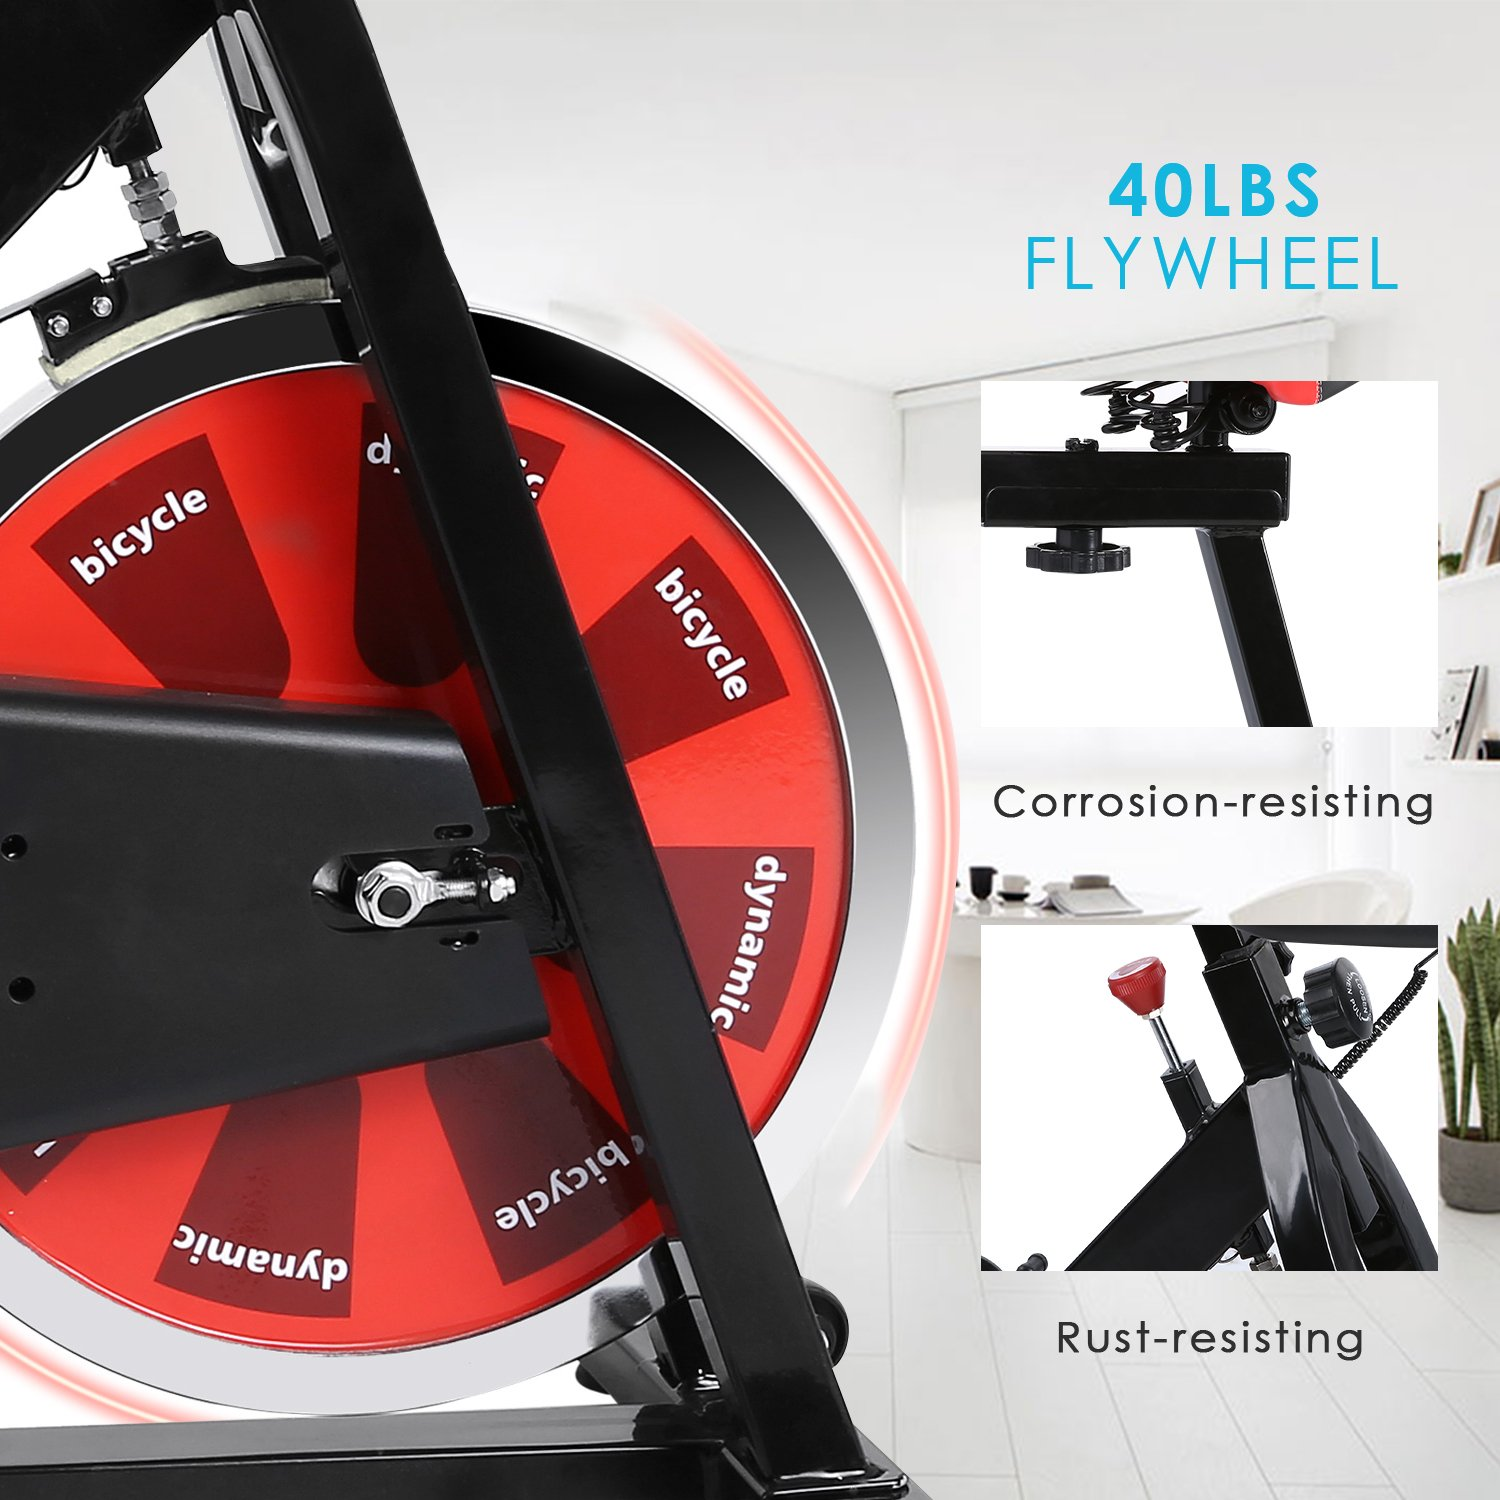 ANCHEER Stationary Bike, Indoor Cycling Exercise Bike 40 LBS Flywheel (Black_NO Pulse) by ANCHEER (Image #1)